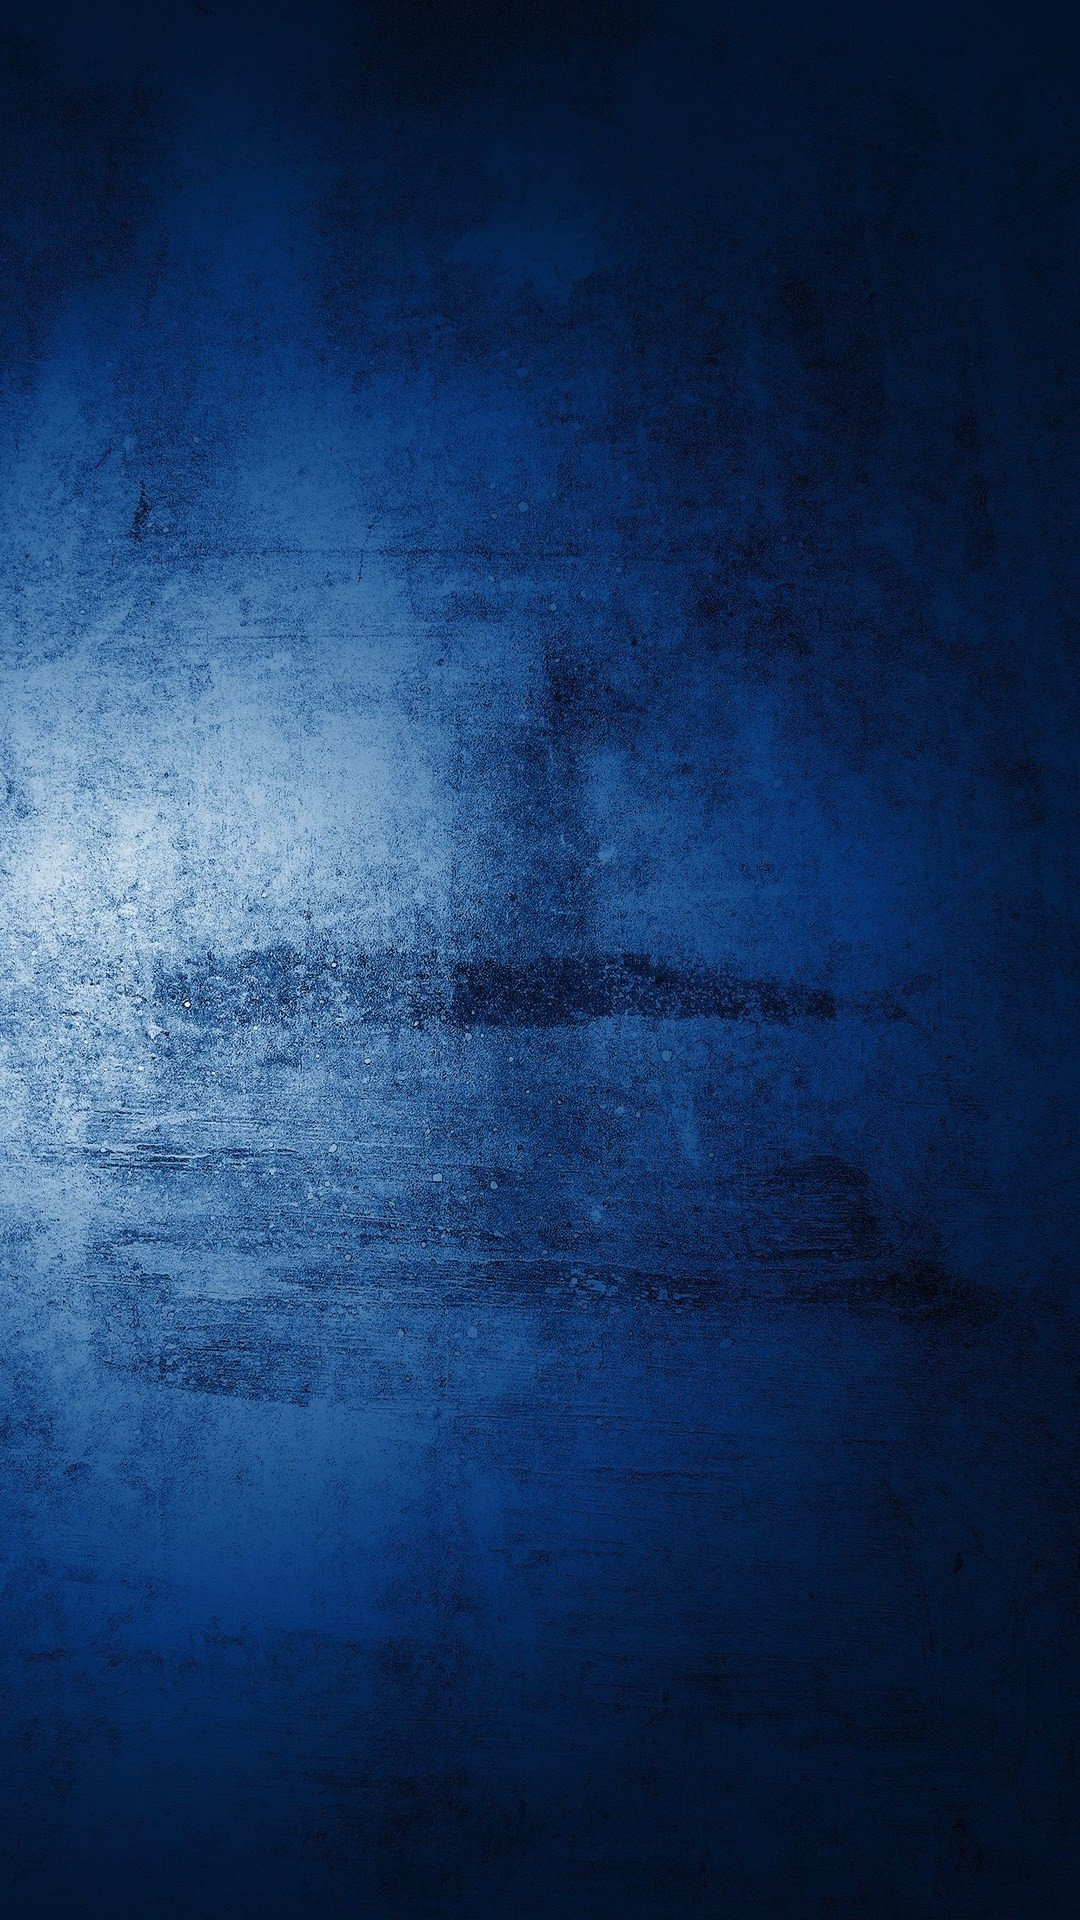 Free Download Blue Wall Abstract Mobile Wallpaper 1080x1920